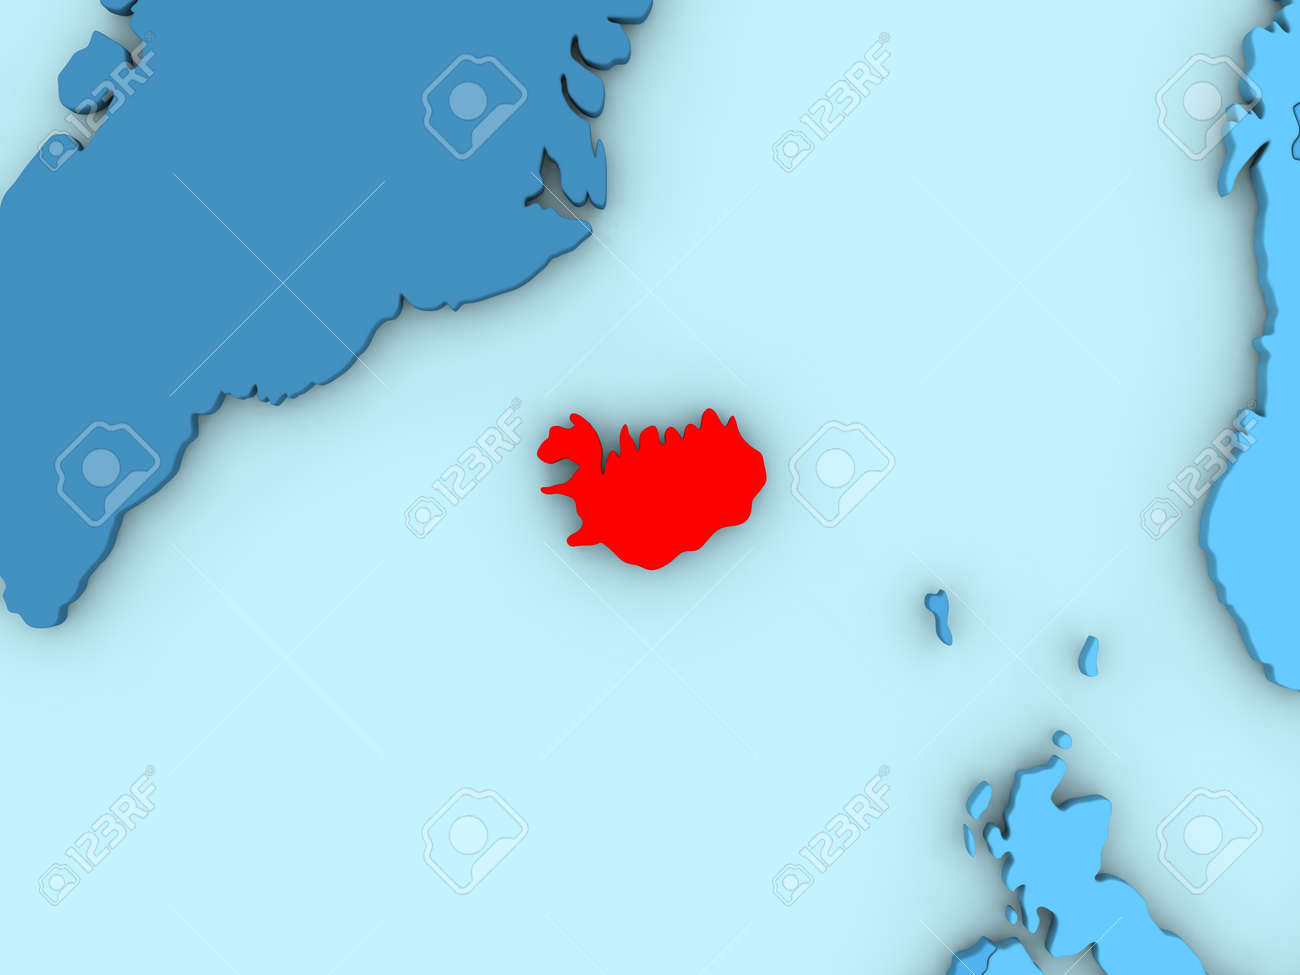 Country of iceland highlighted in red on blue map 3d illustration country of iceland highlighted in red on blue map 3d illustration stock illustration 72016039 gumiabroncs Gallery